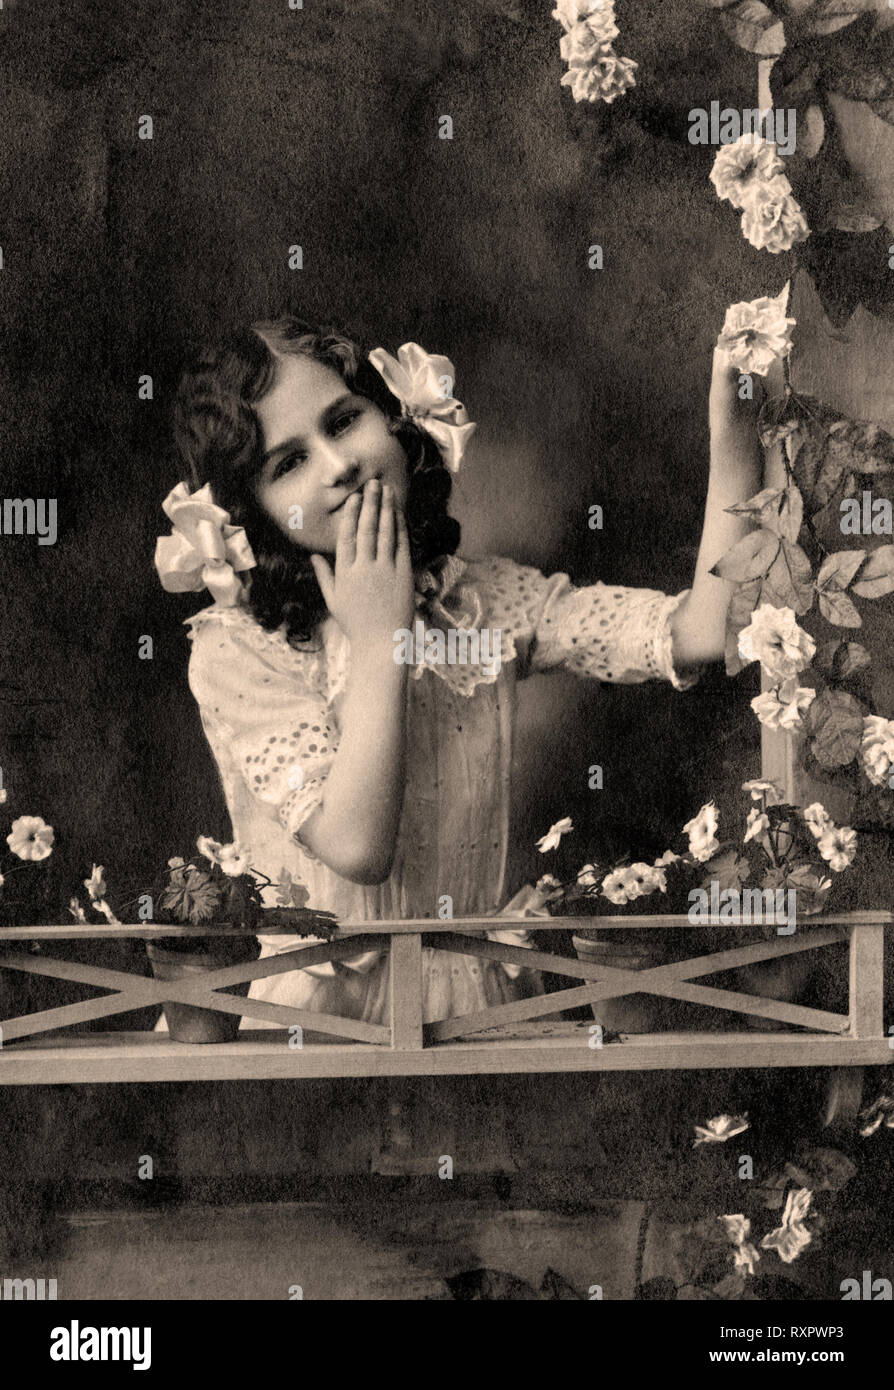 Vintage portrait of woman in the late 19 th century Stock Photo